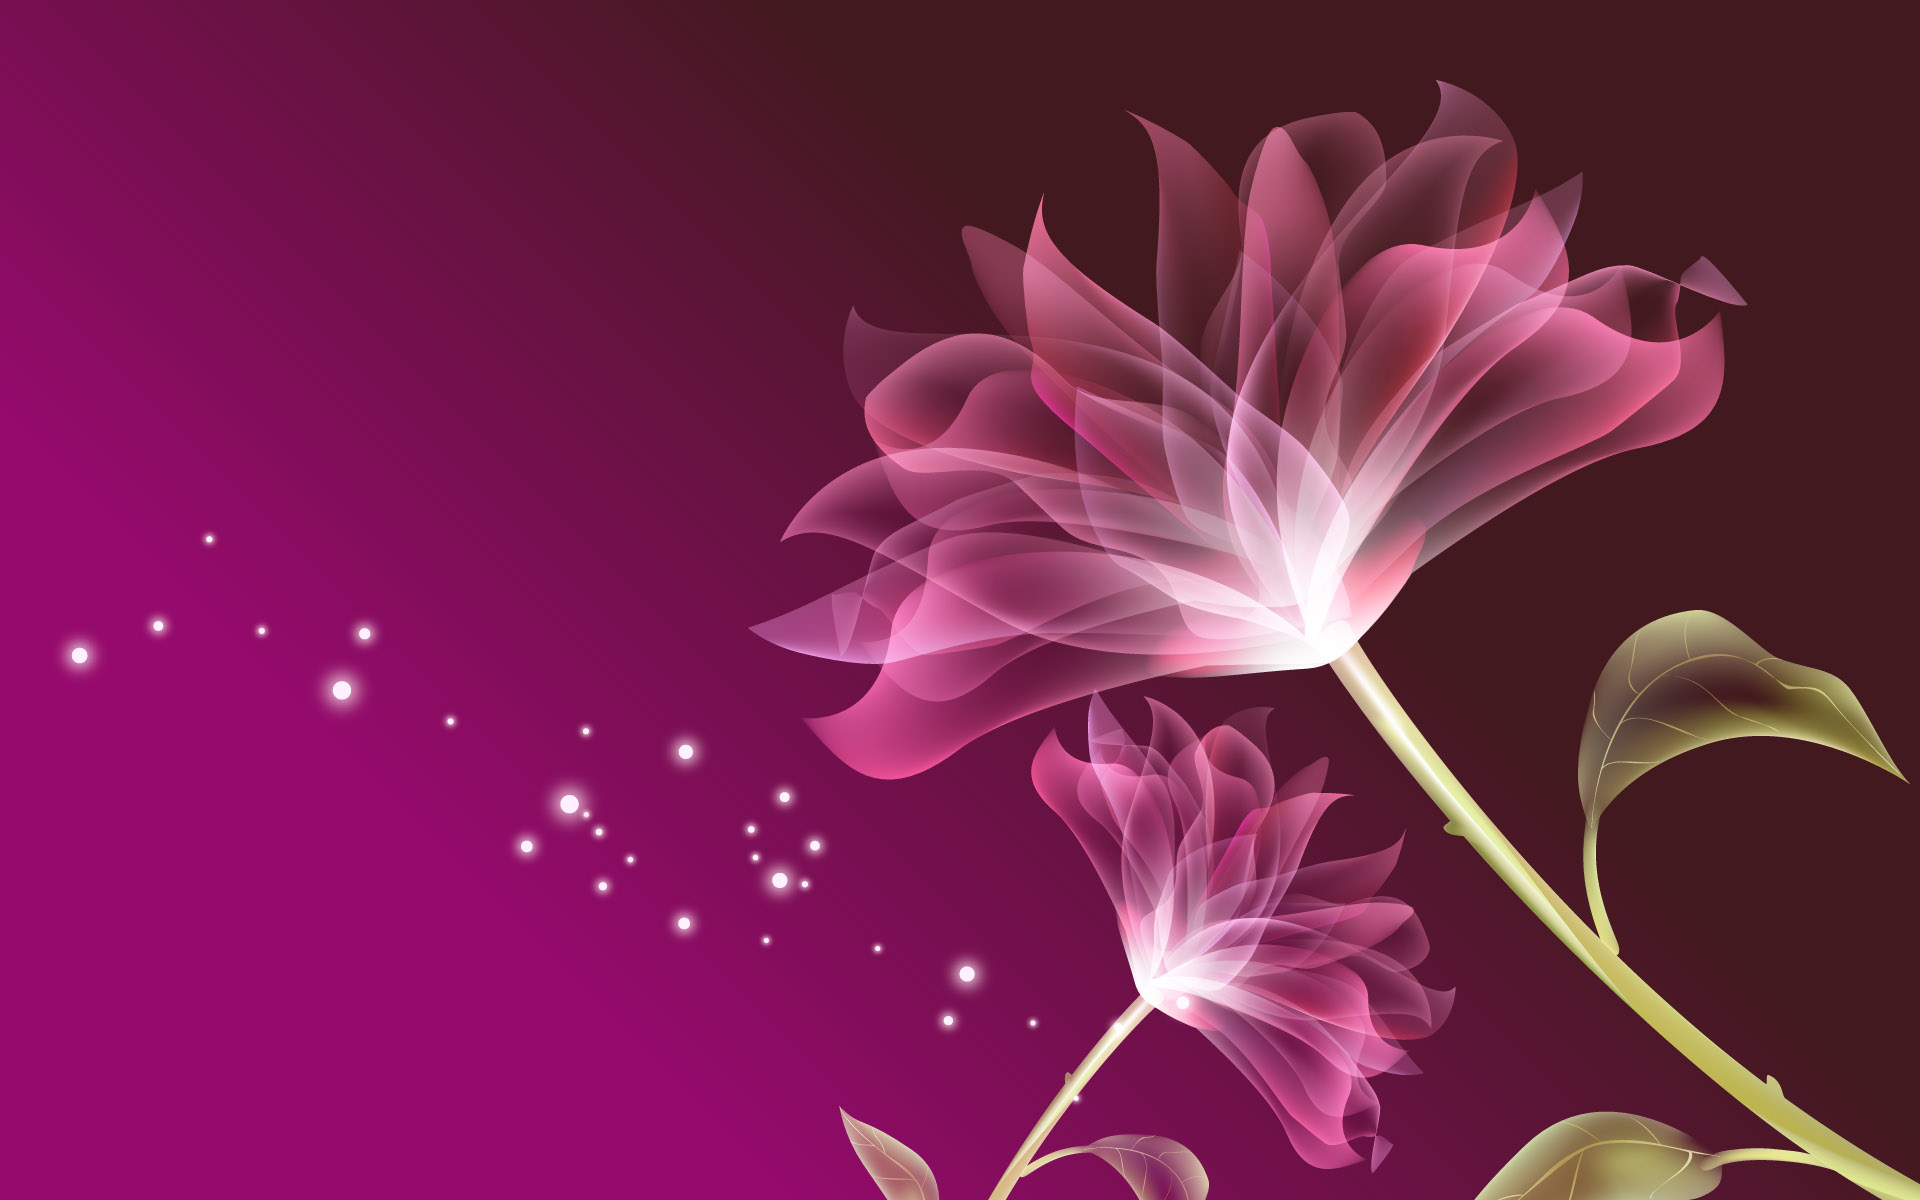 Free pictures of pink flowers picture royalty free download 17 best ideas about Pink Flower Wallpaper on Pinterest | Flora ... picture royalty free download